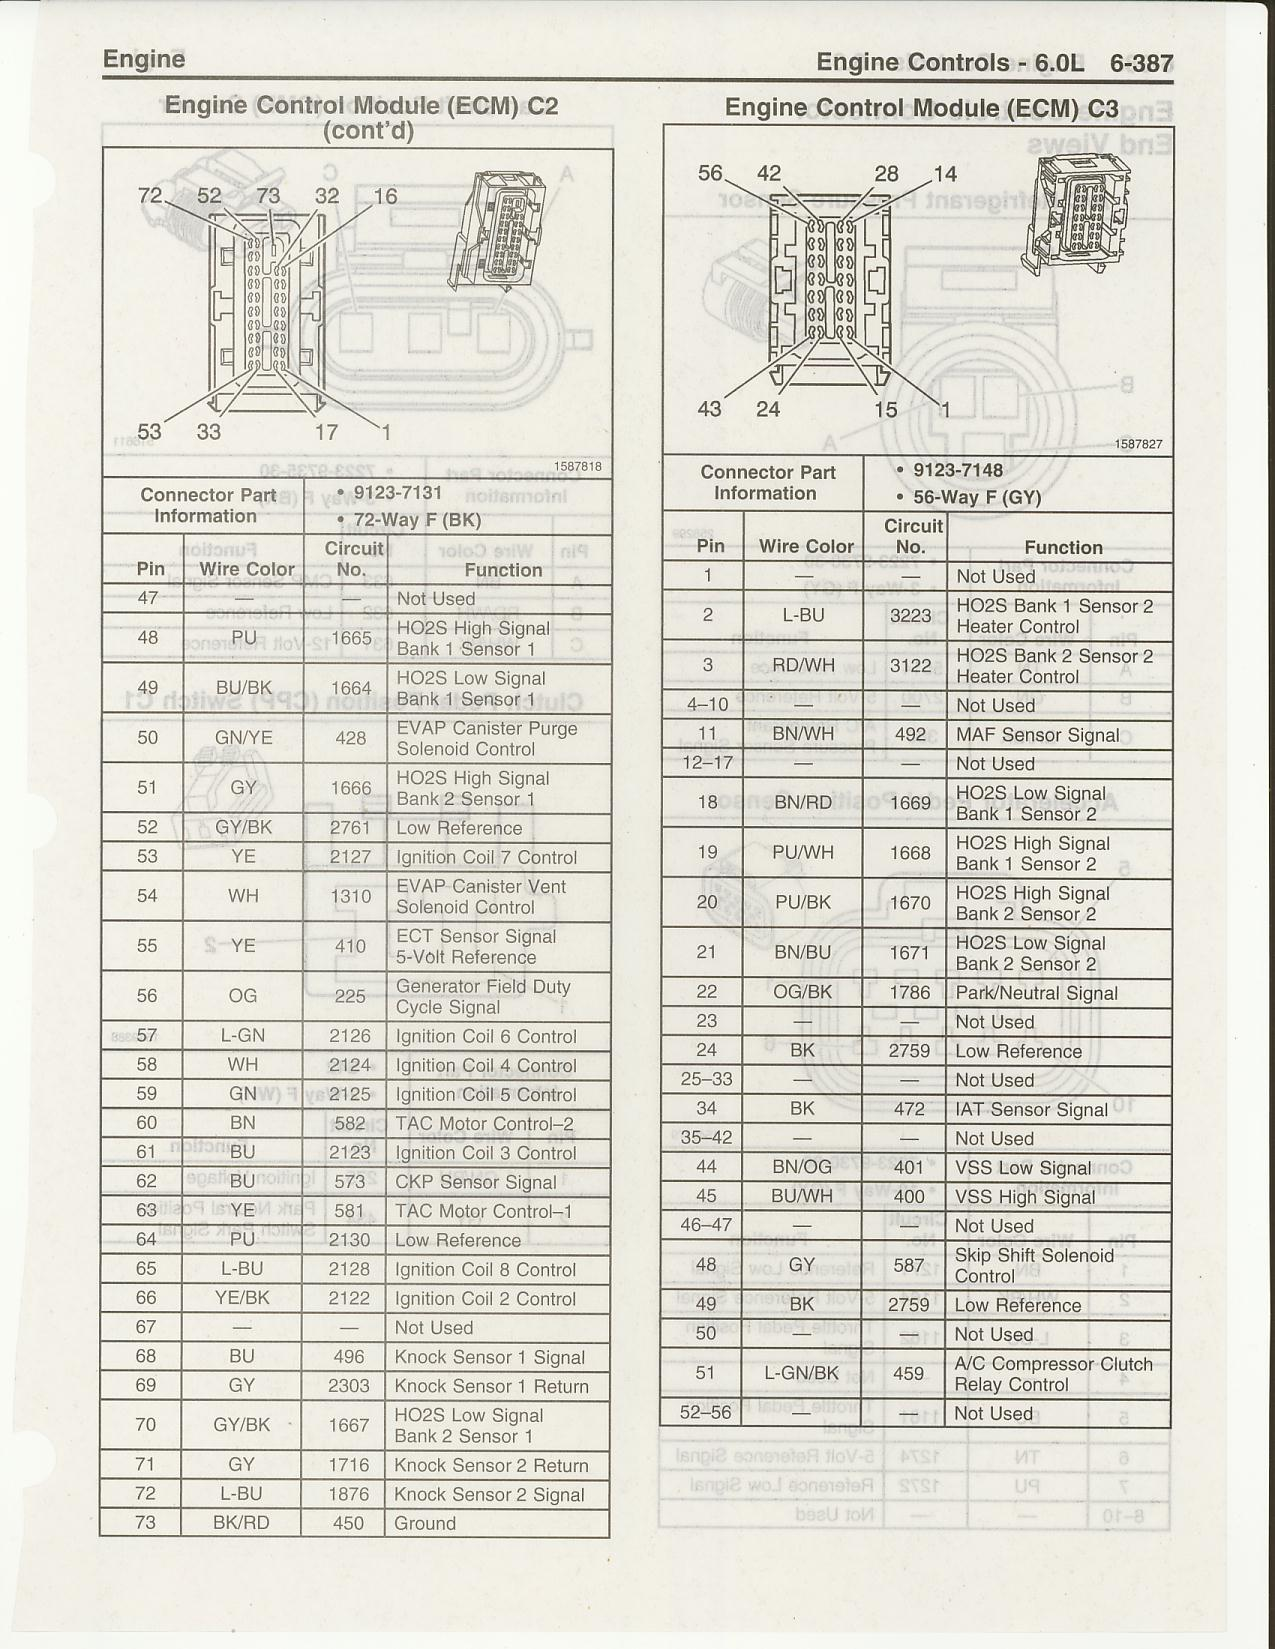 e38 ecm pinout request can anyone scan in a couple pictures for rh corvetteforum com GM Factory Wiring Diagram 5.9 Cummins Pictures Diagram Crouse Control